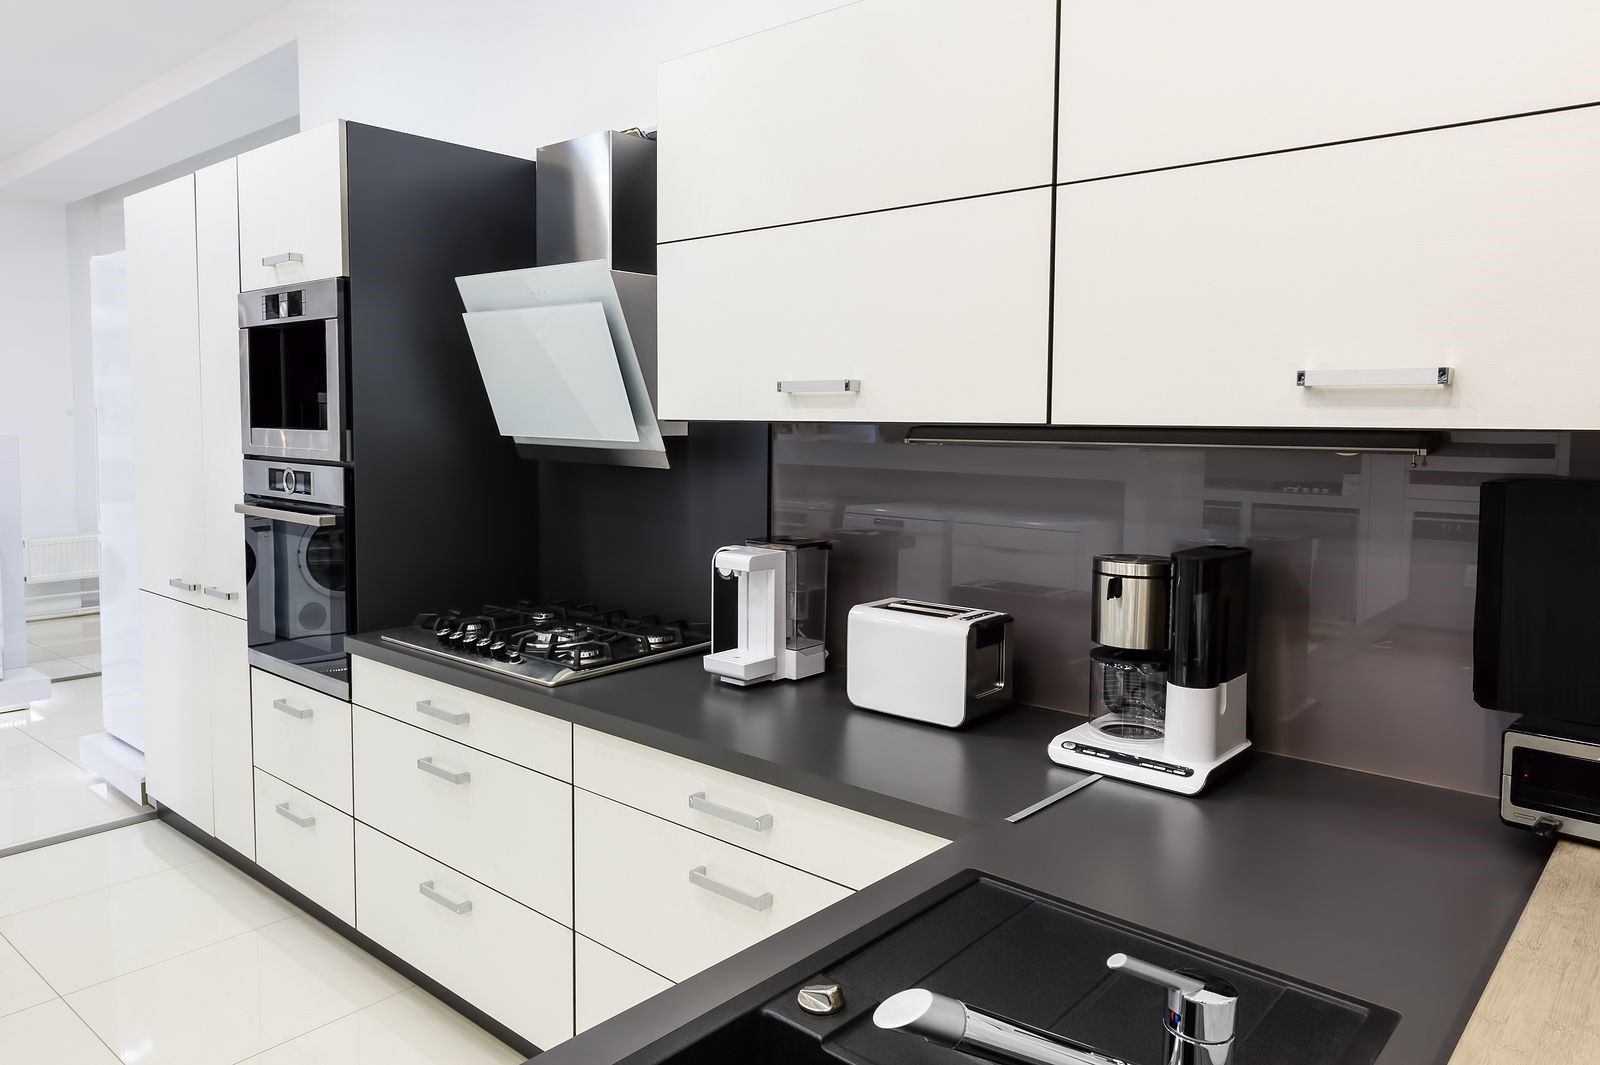 Kitchen Trend Tuxedo Cabinets on tuxedo kitchen young house love, tuxedo kitchen cabinwts, lowe's pantry white cabinets,